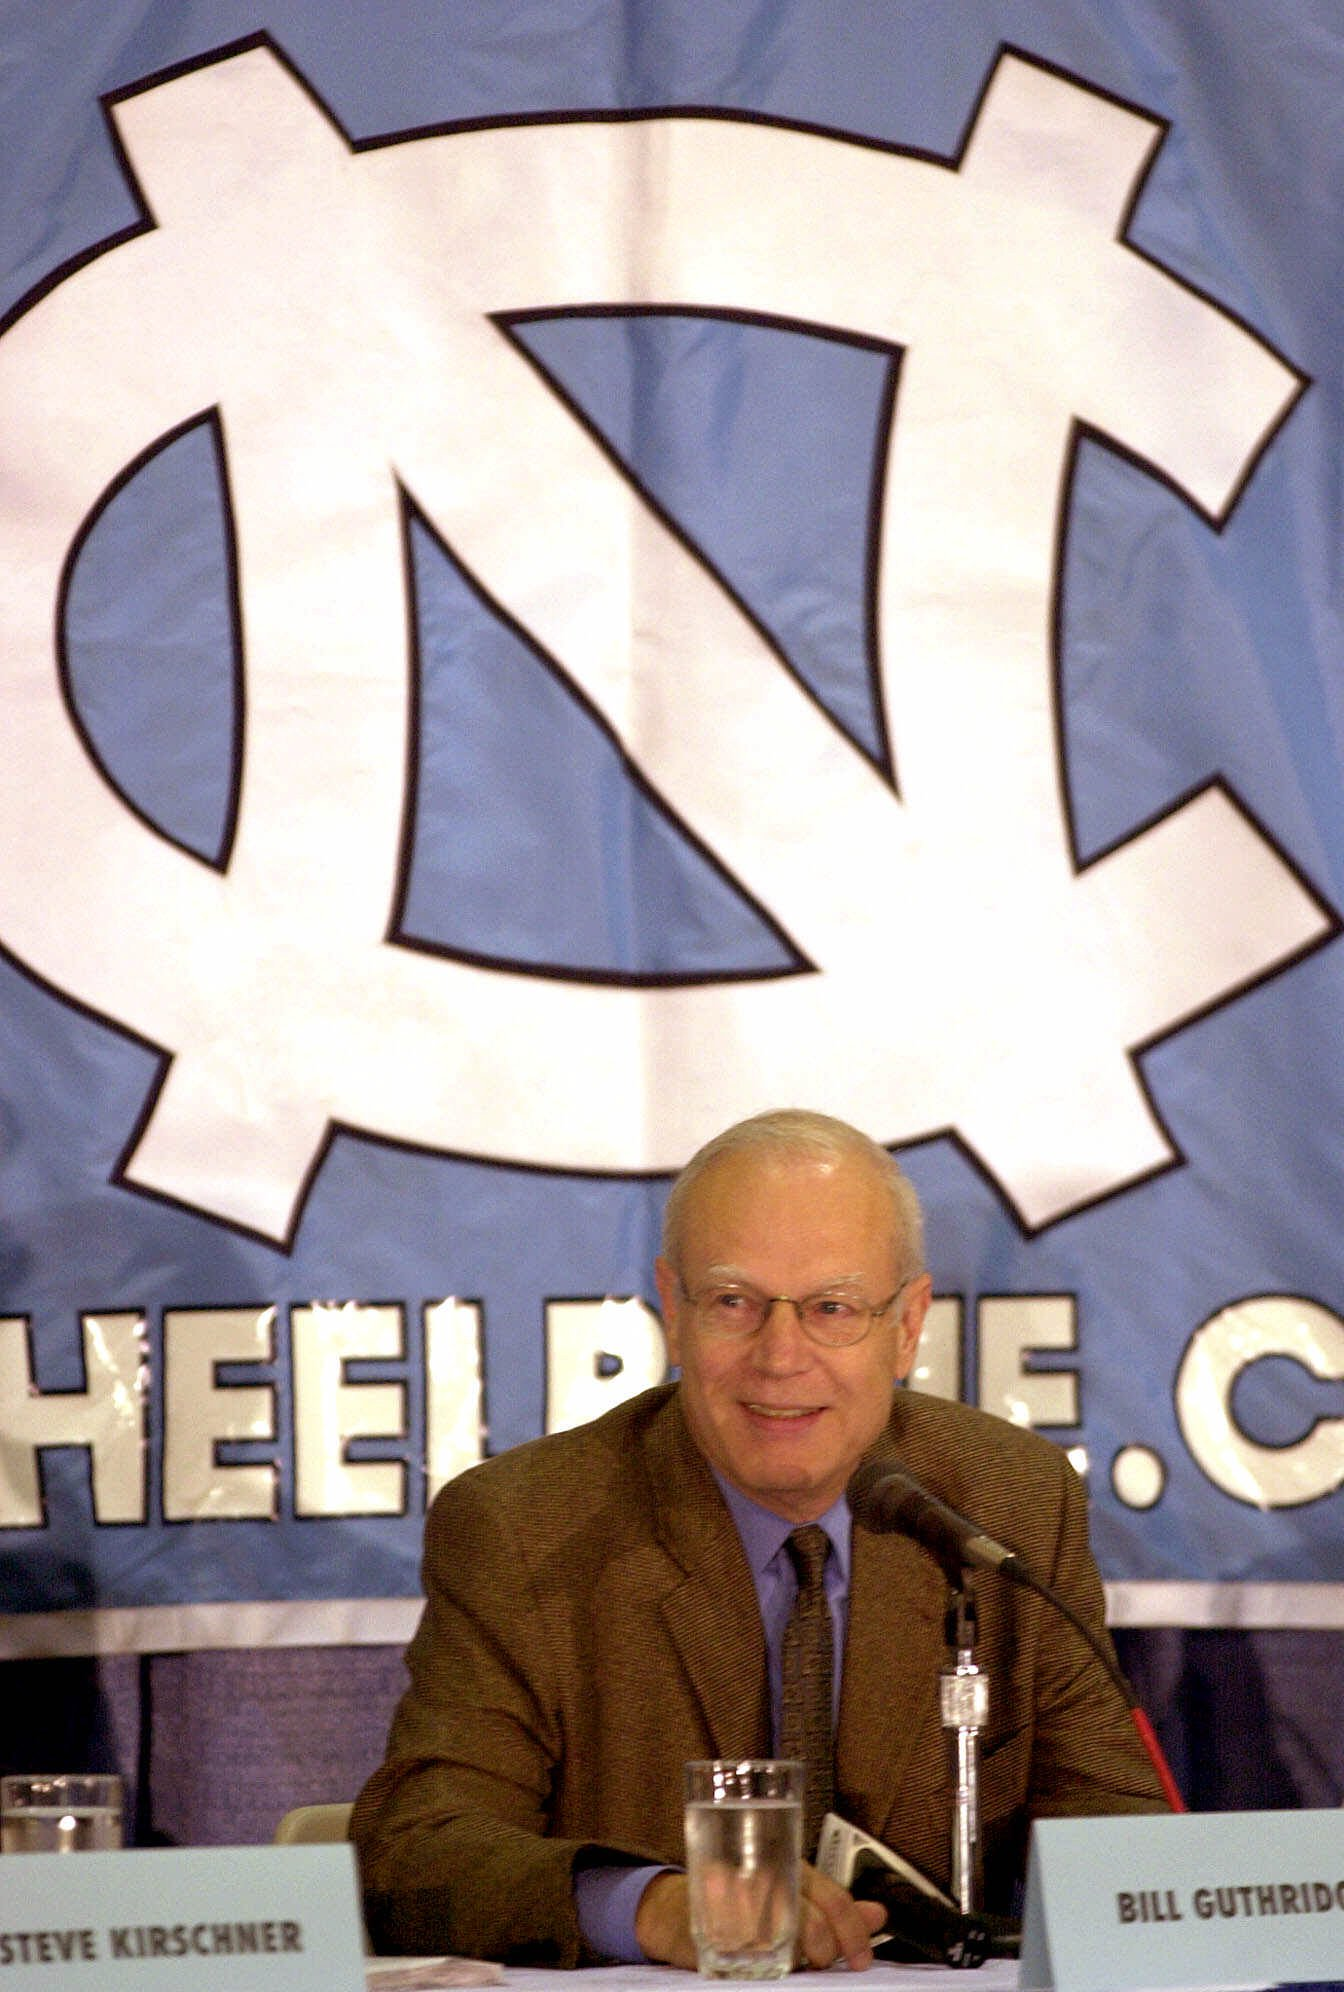 North Carolina basketball coach Bill Guthridge smiles as he announces his retirement during a news conference Friday, June 30, 2000, in Chapel Hill, N.C.  The 62-year-old coach spent 30 seasons as an assistant to Dean Smith, the winningest coach in colleg